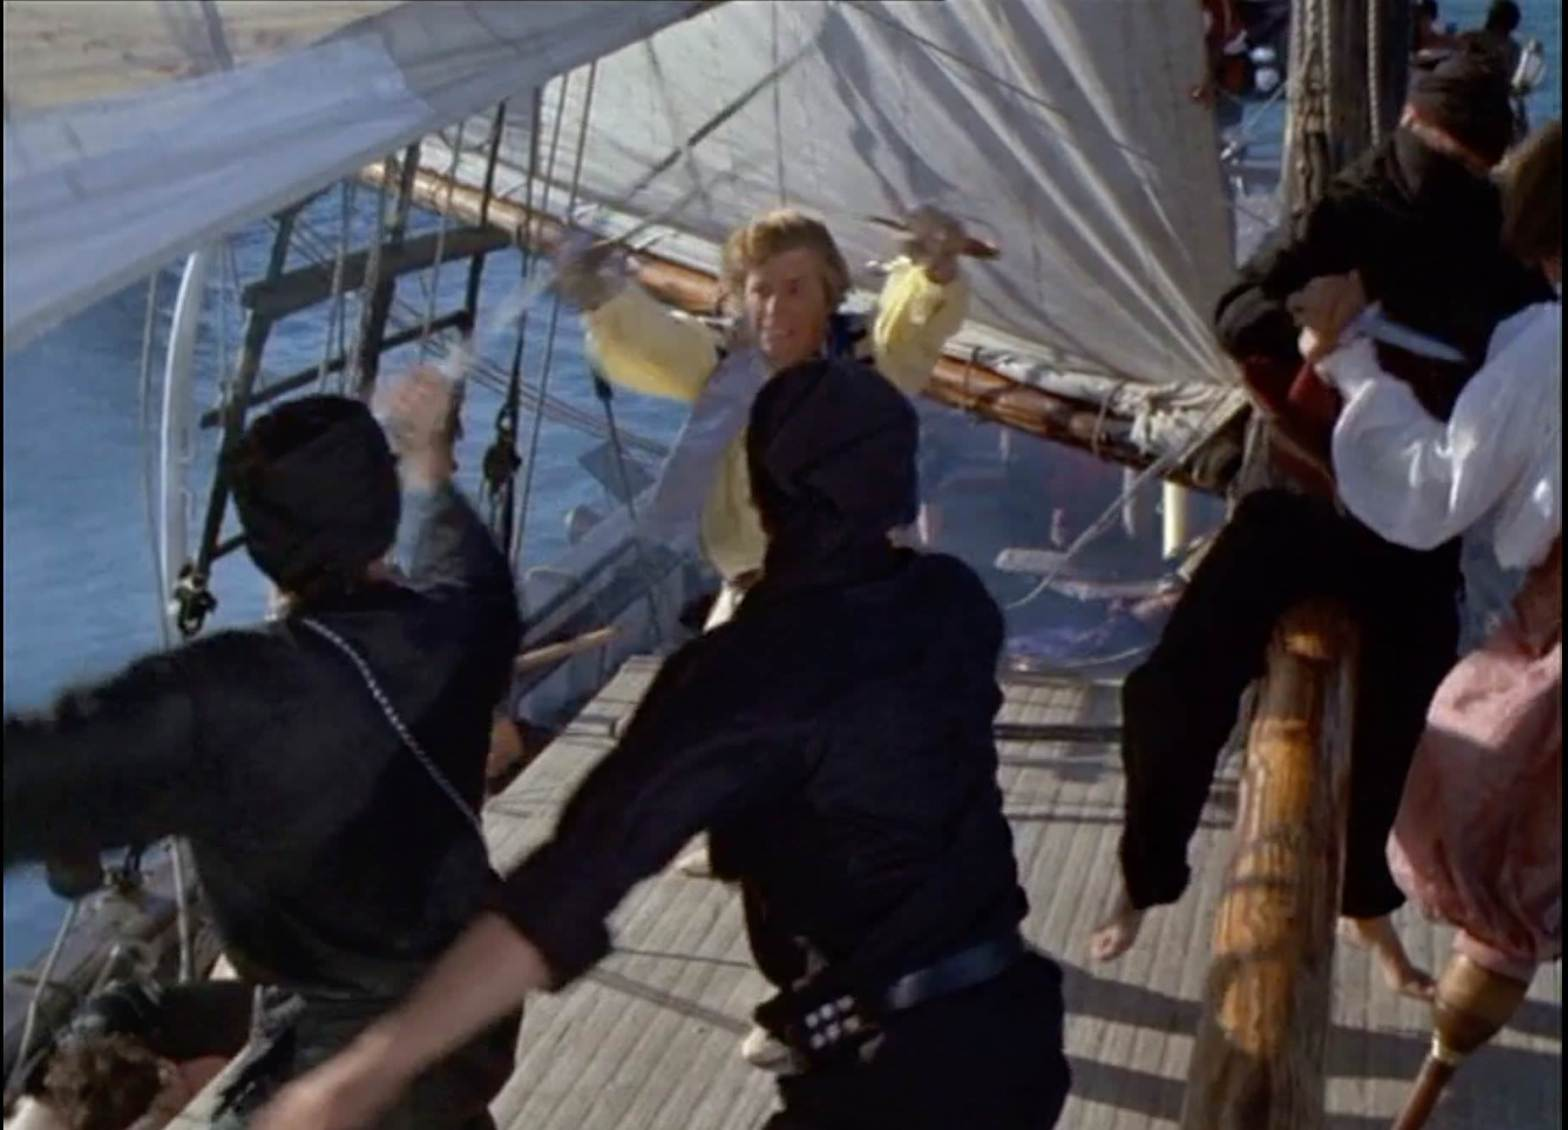 Chinese Pirate Battle: The Pirate Movie